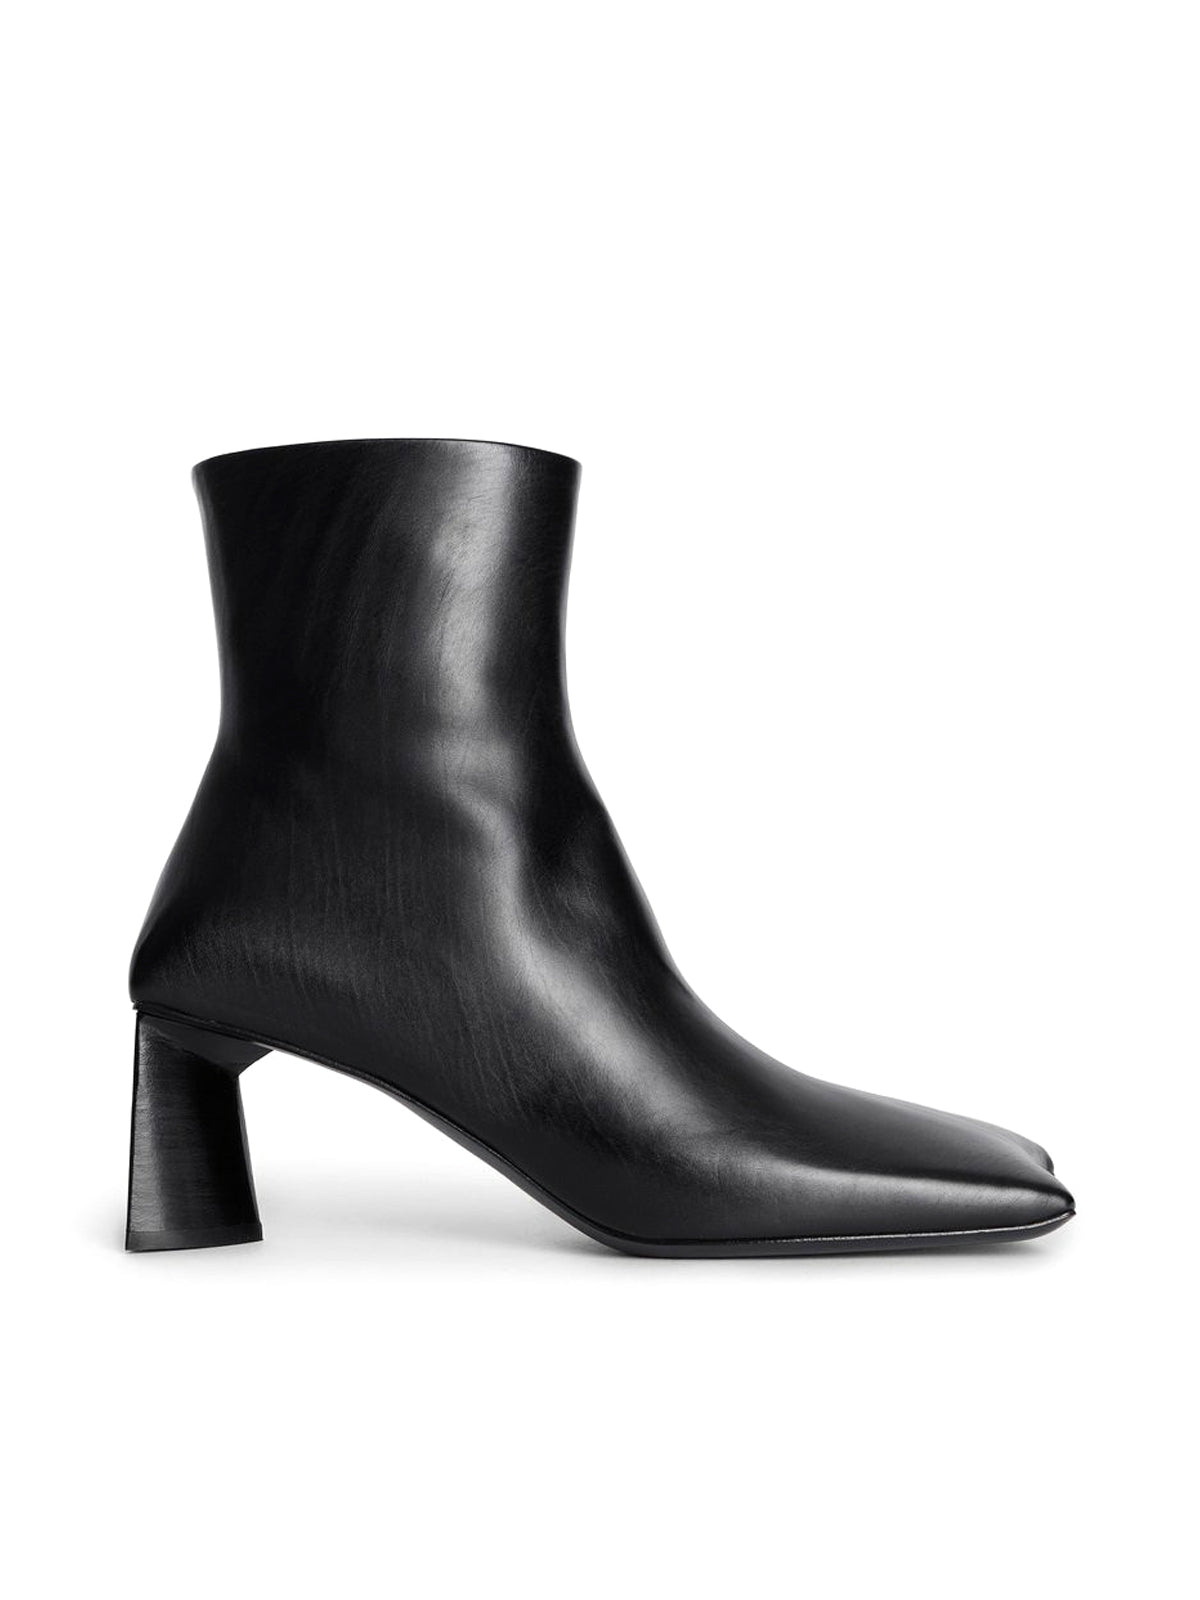 ankle boot with squared toe